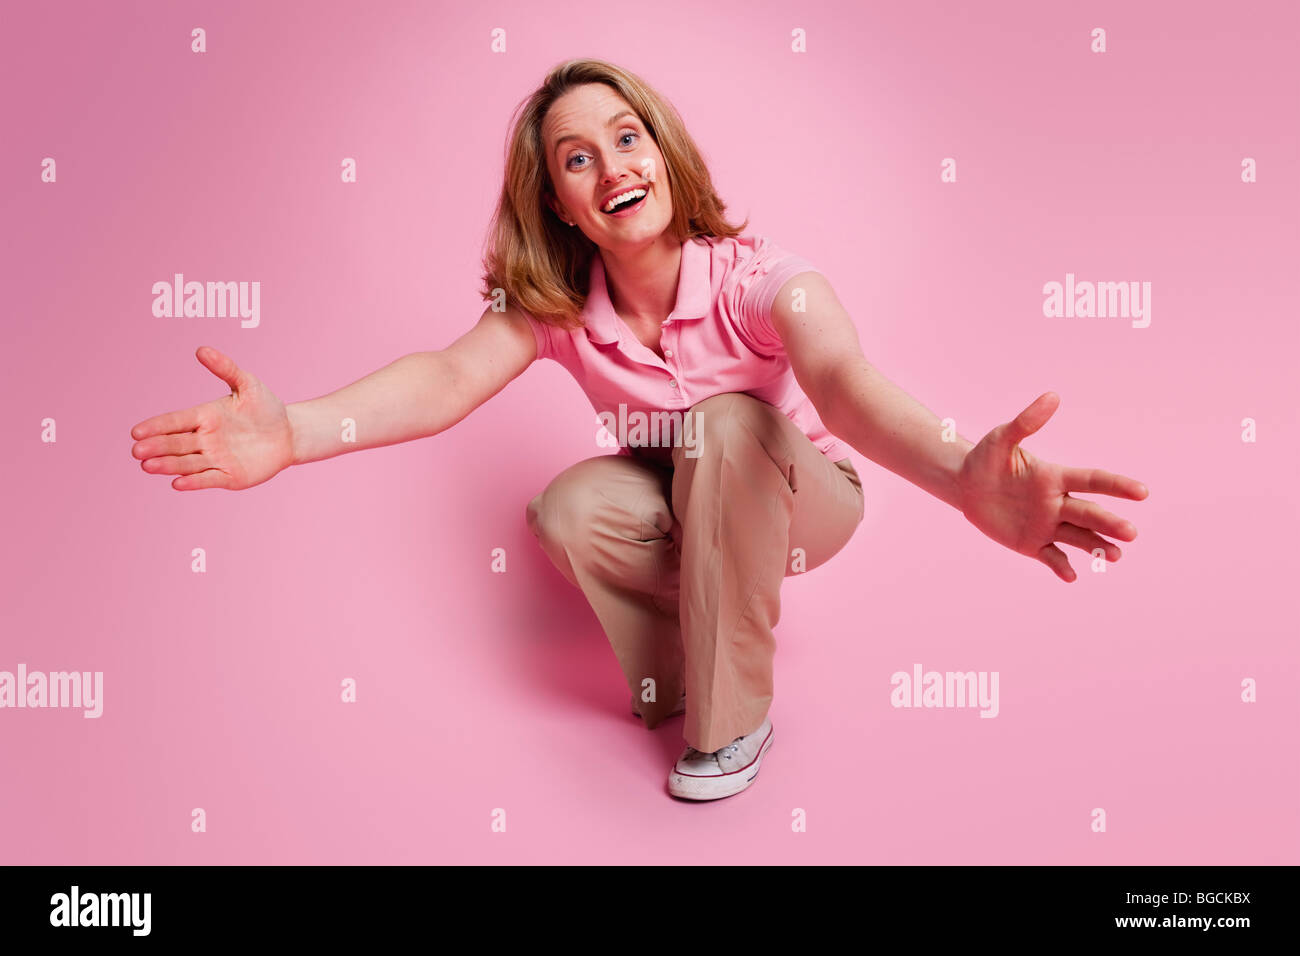 Crouching woman with outstretched open arms on pink background - Stock Image